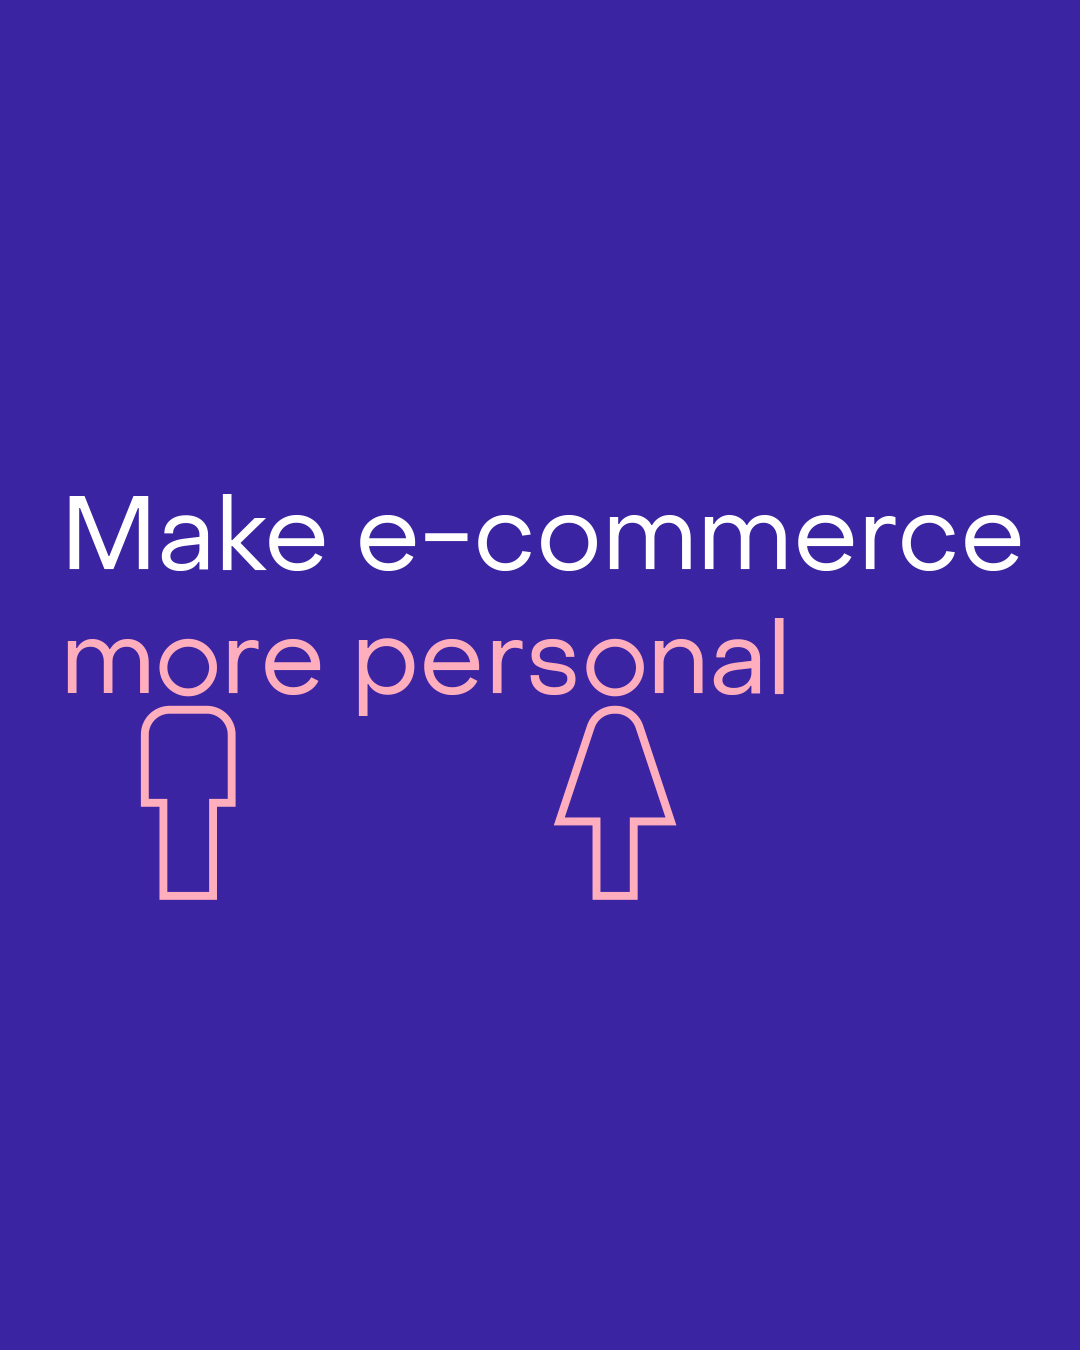 Make ecommerce more personal with stick figures on a purple background.